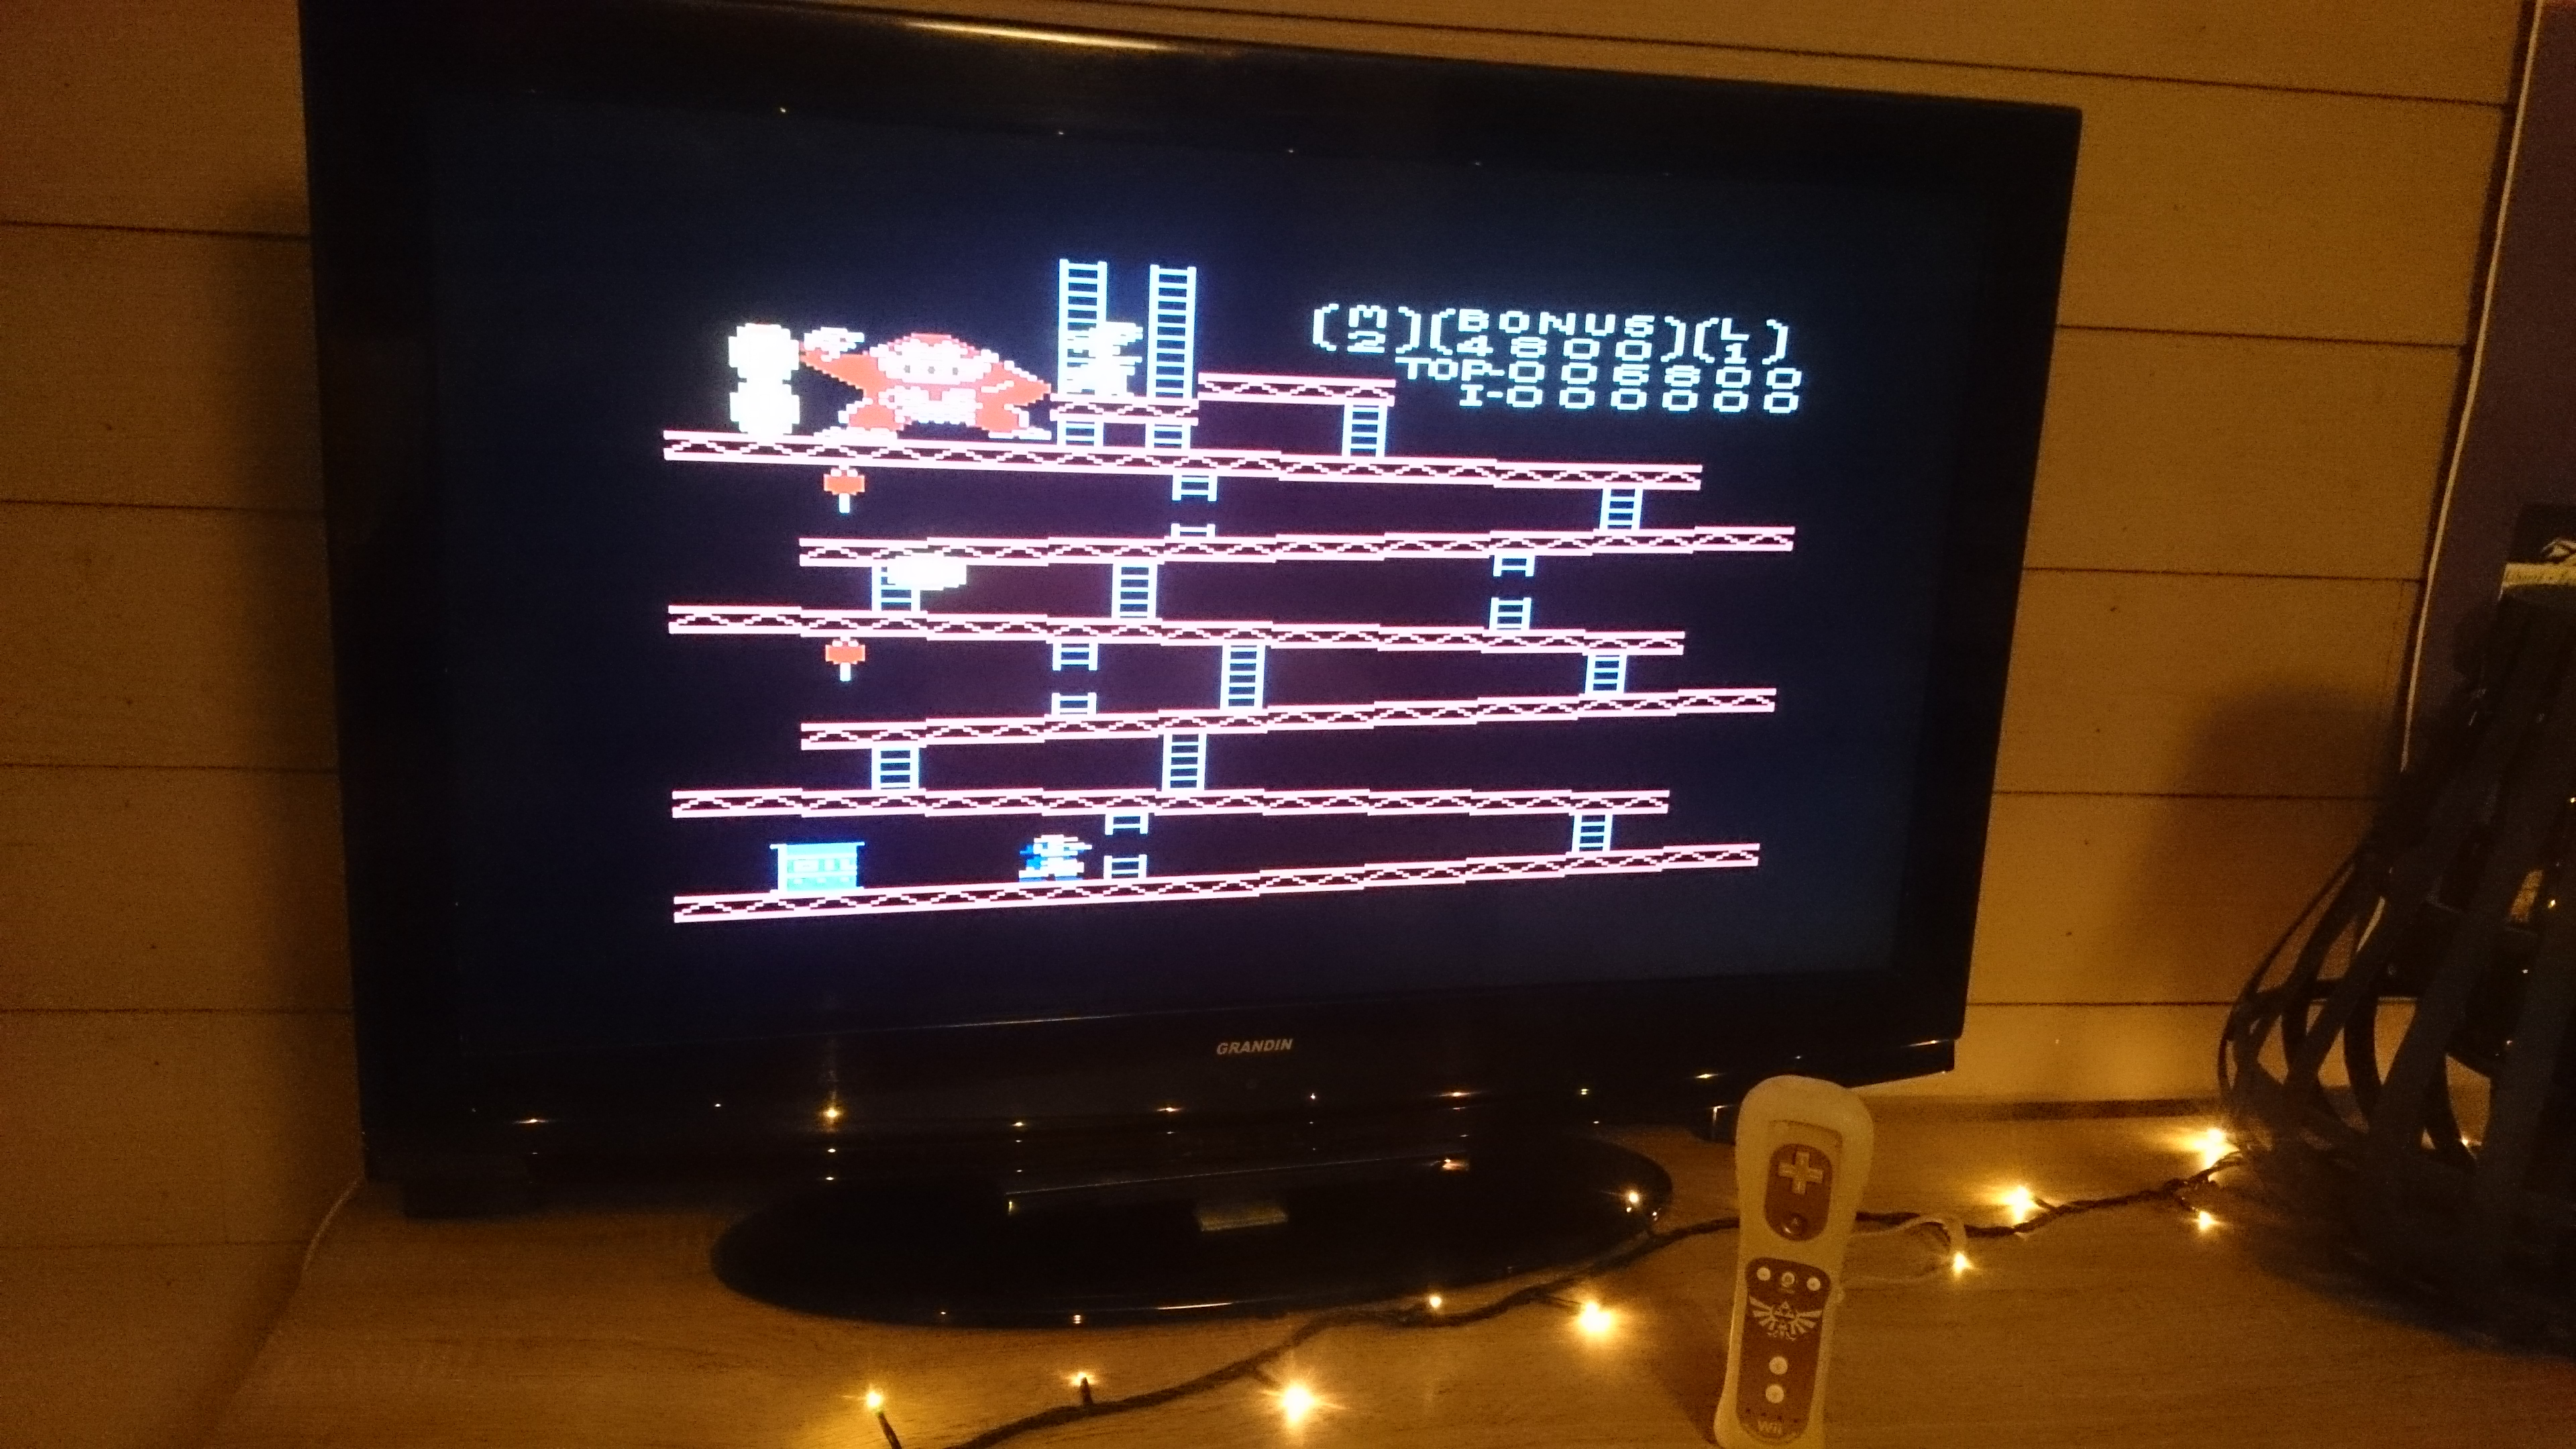 Donkey Kong: Standard 6,800 points